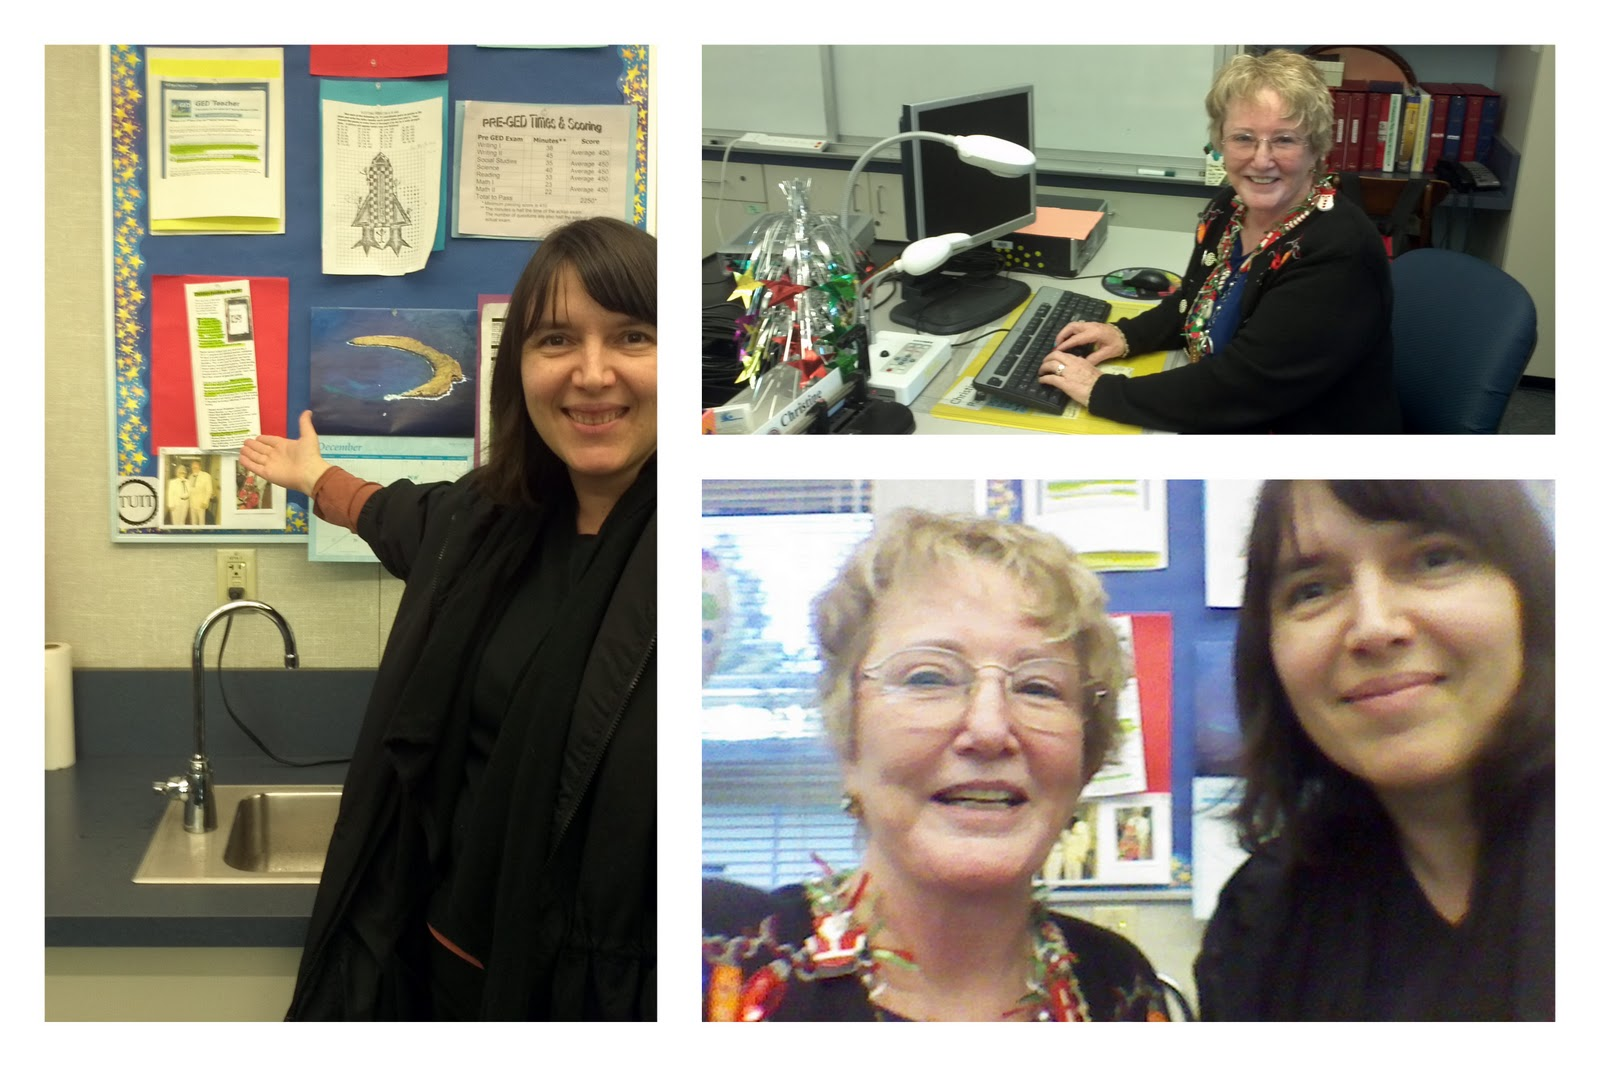 Branka's Site Visit with Christine at Mt. Diablo Adult Education